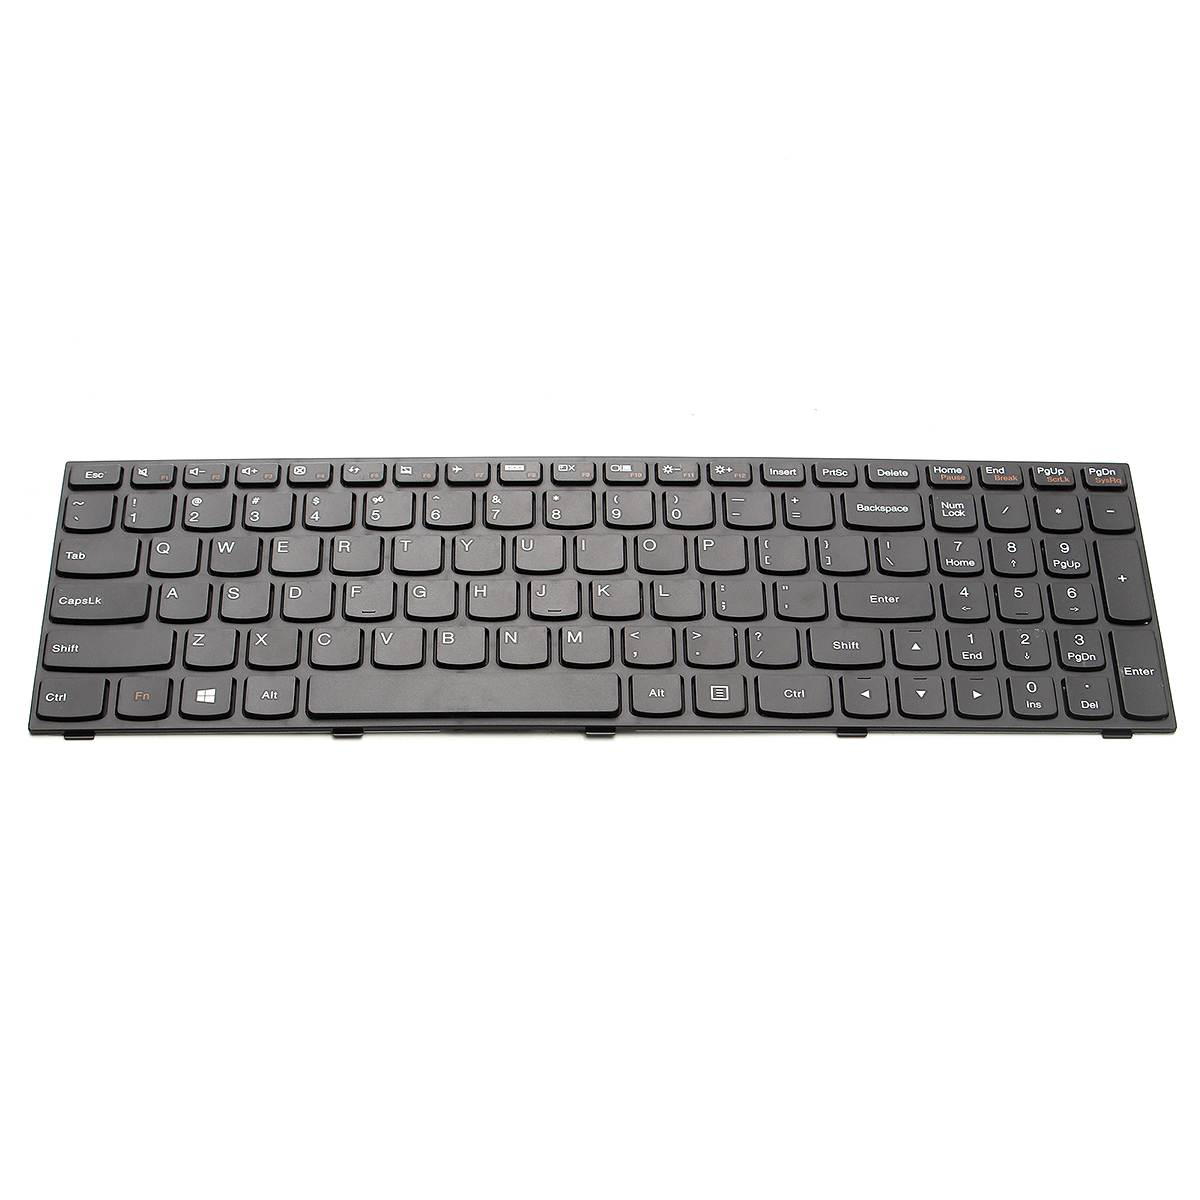 INSMA New For Lenovo B50-30 G50-30 G50-45 G50-70 G50-80 Z50-70 Laptop Keyboard 25214785 Key Caps Sets Late 2019 Mid 2010